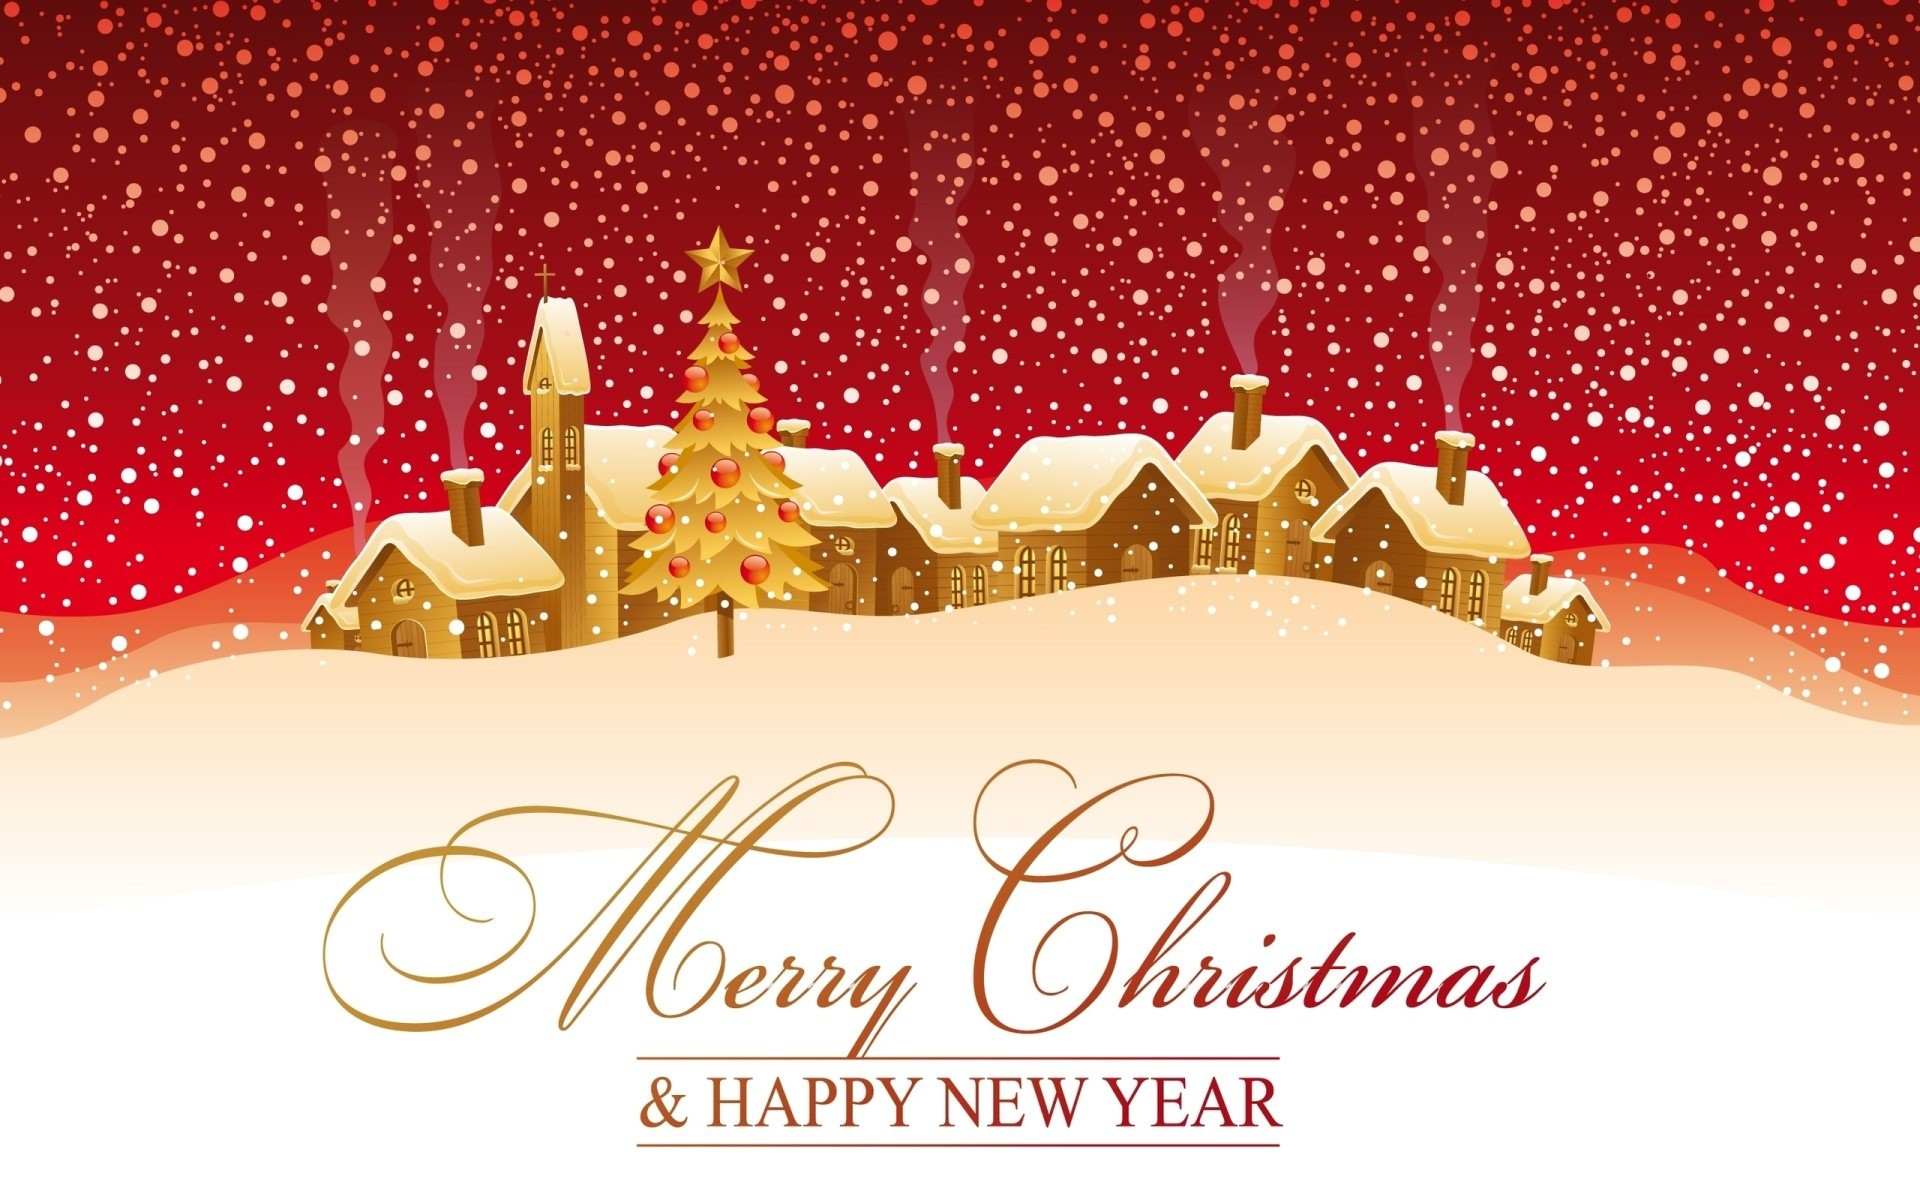 Merry Christmas Wallpaper Greeting Festival